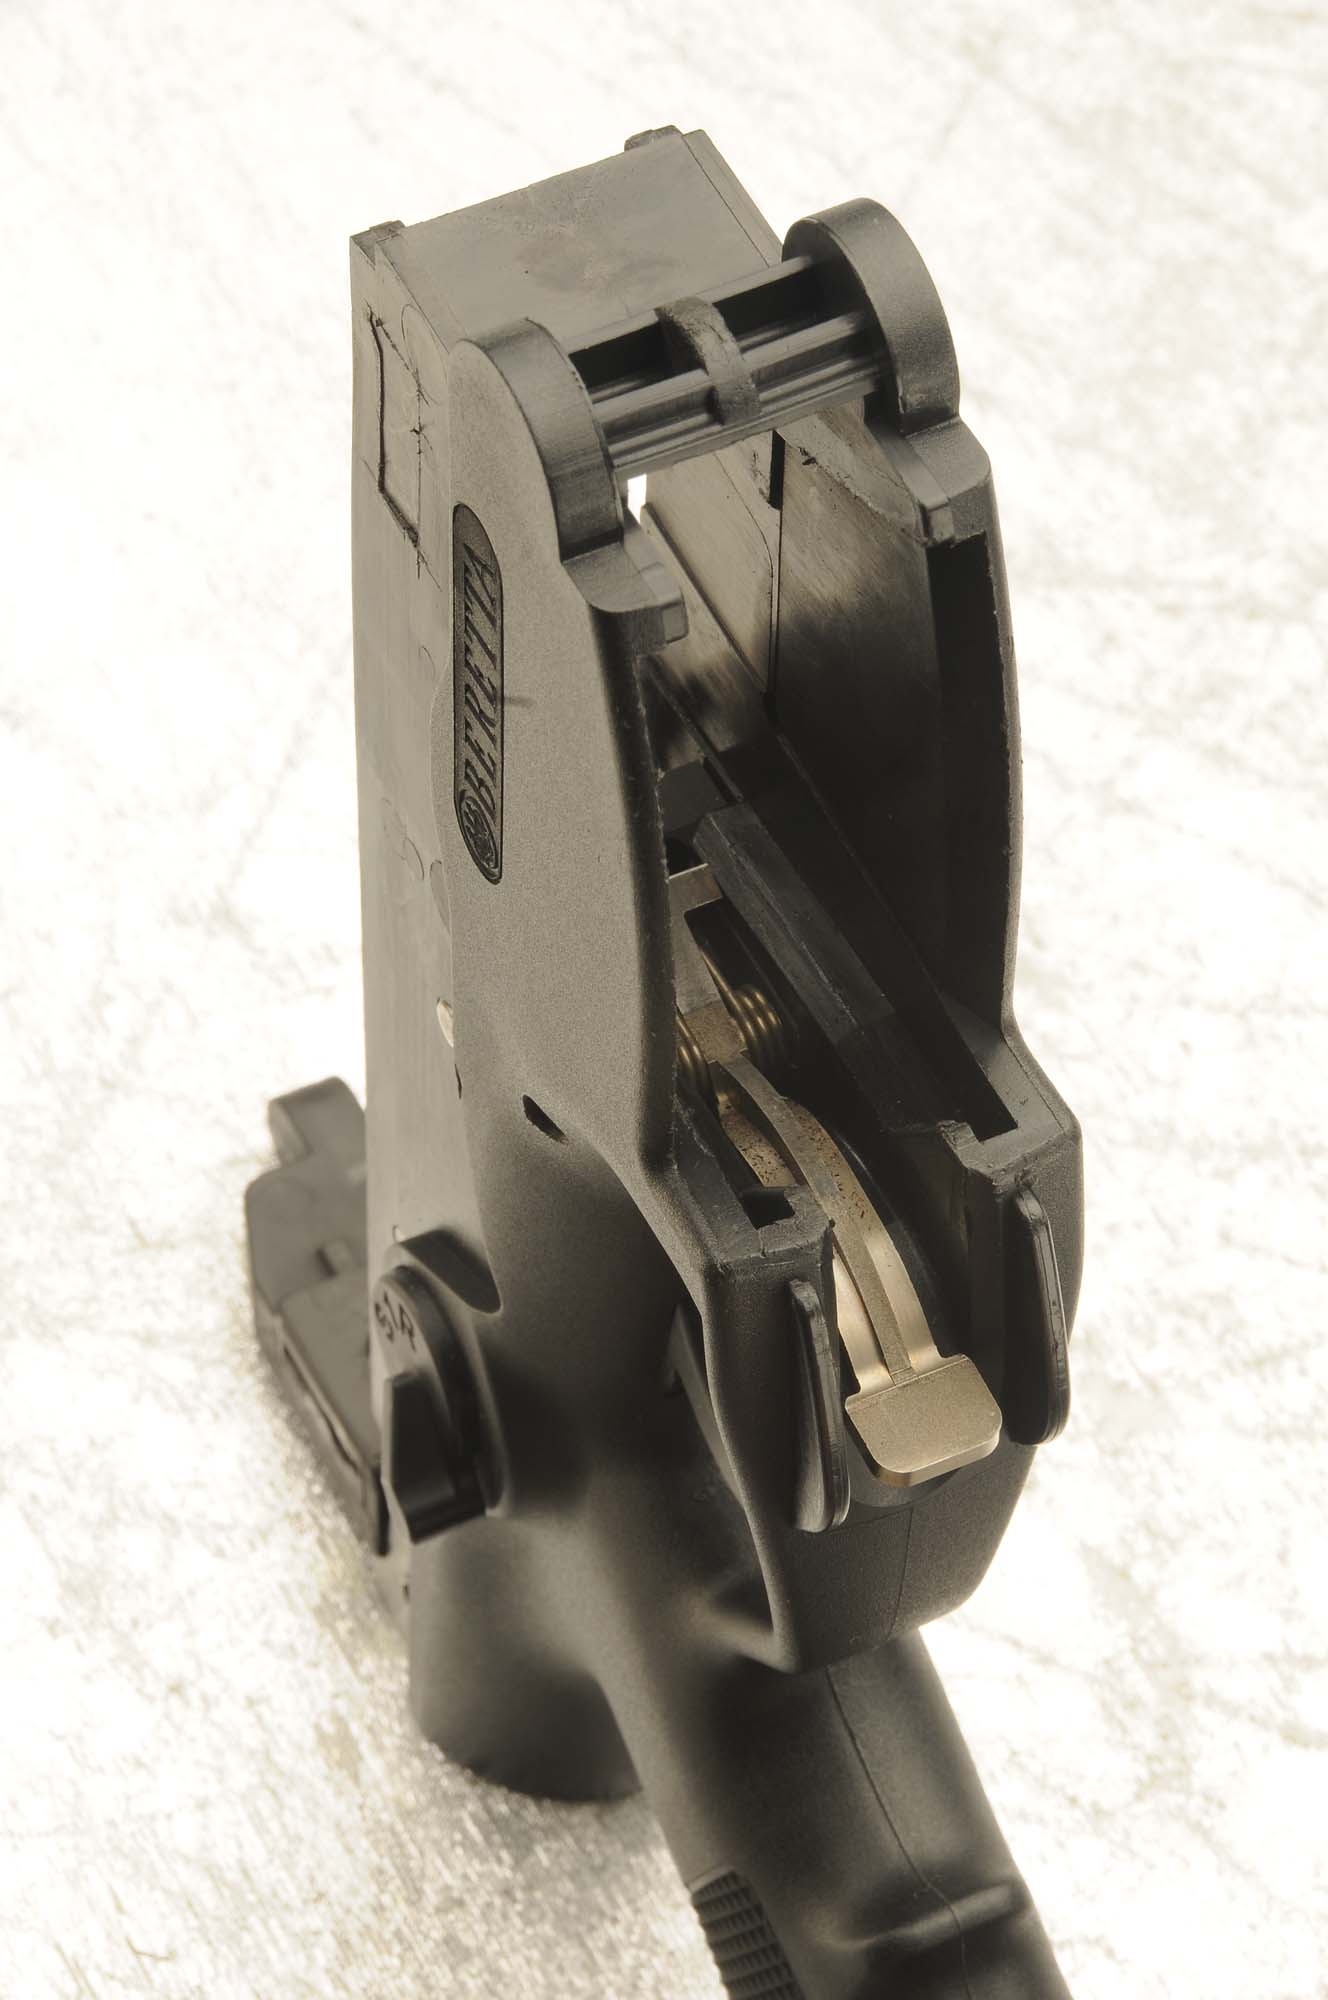 Details of the new Lower Receiver, with redesigned magazine well and the new lever magazine retention and release system